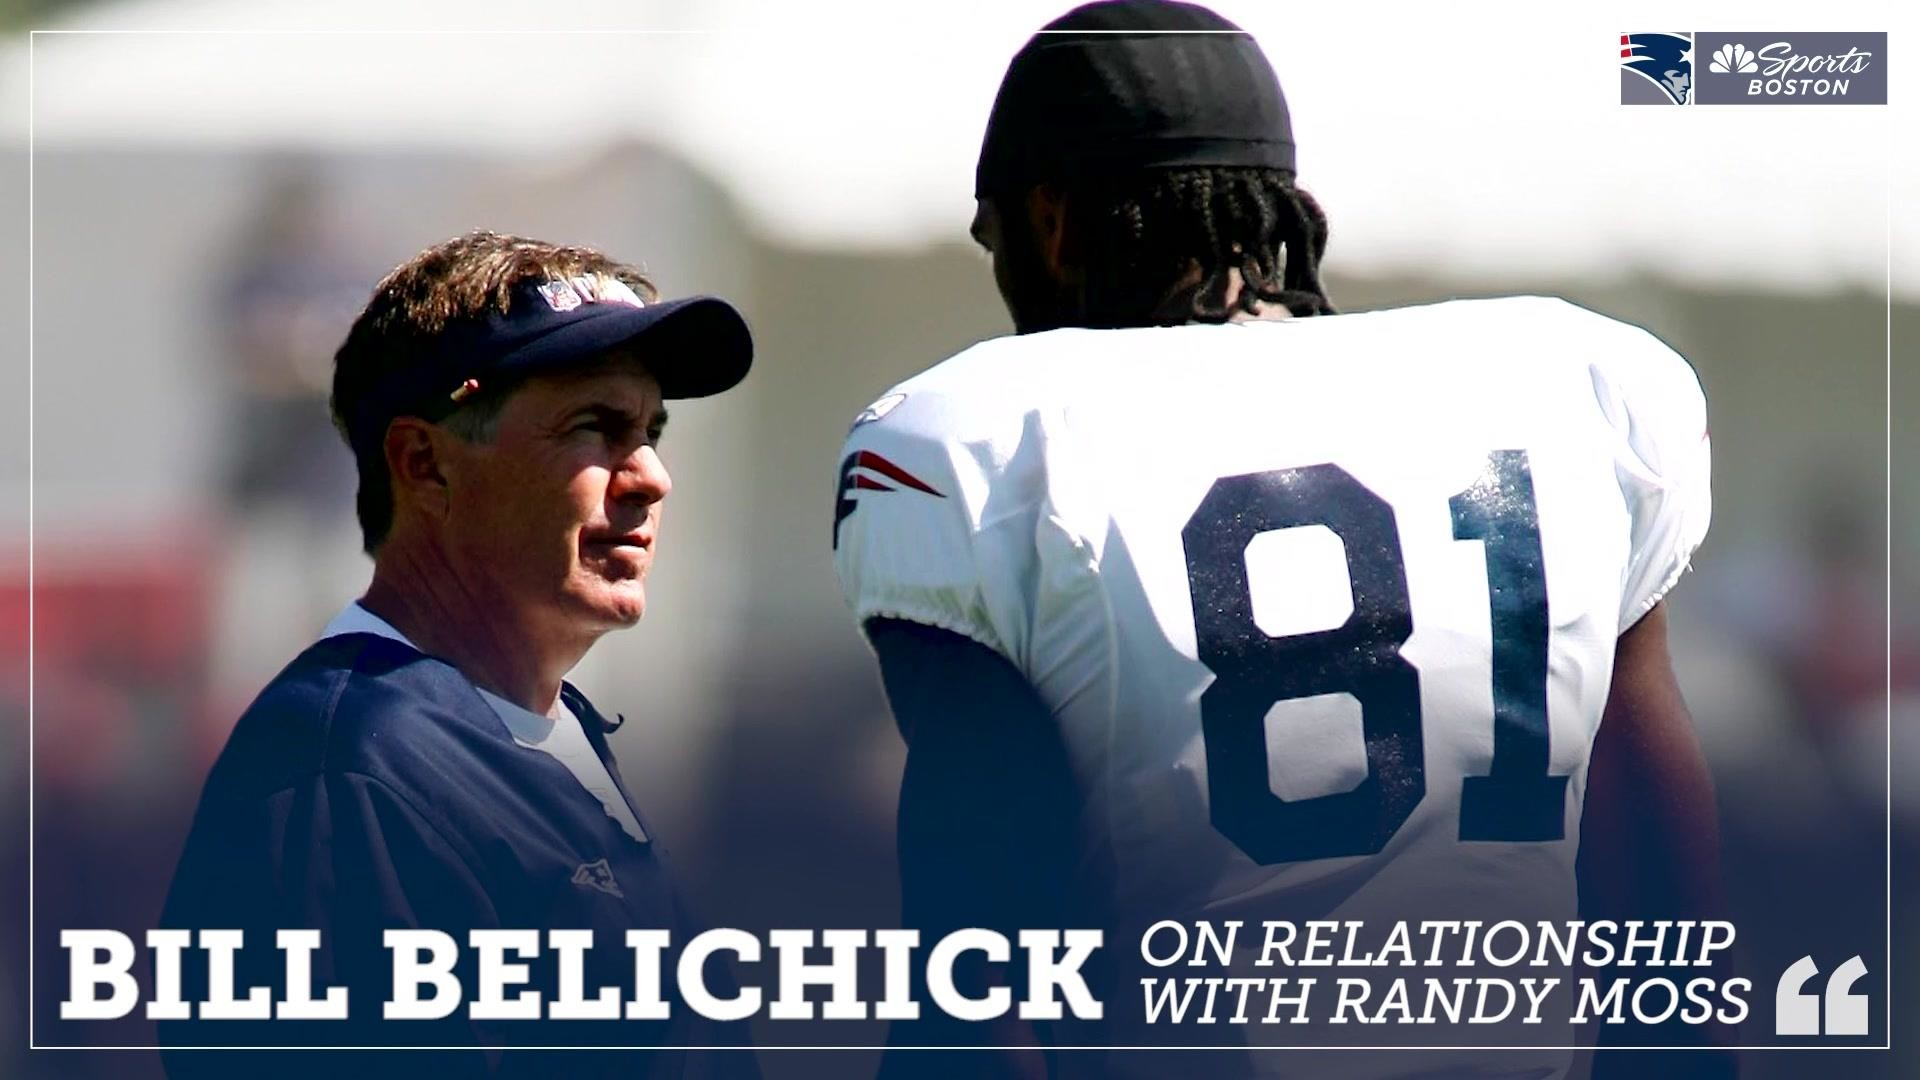 Res: 1920x1080, Bill Belichick: Relationship with Randy Moss was very special | NBC Sports Boston